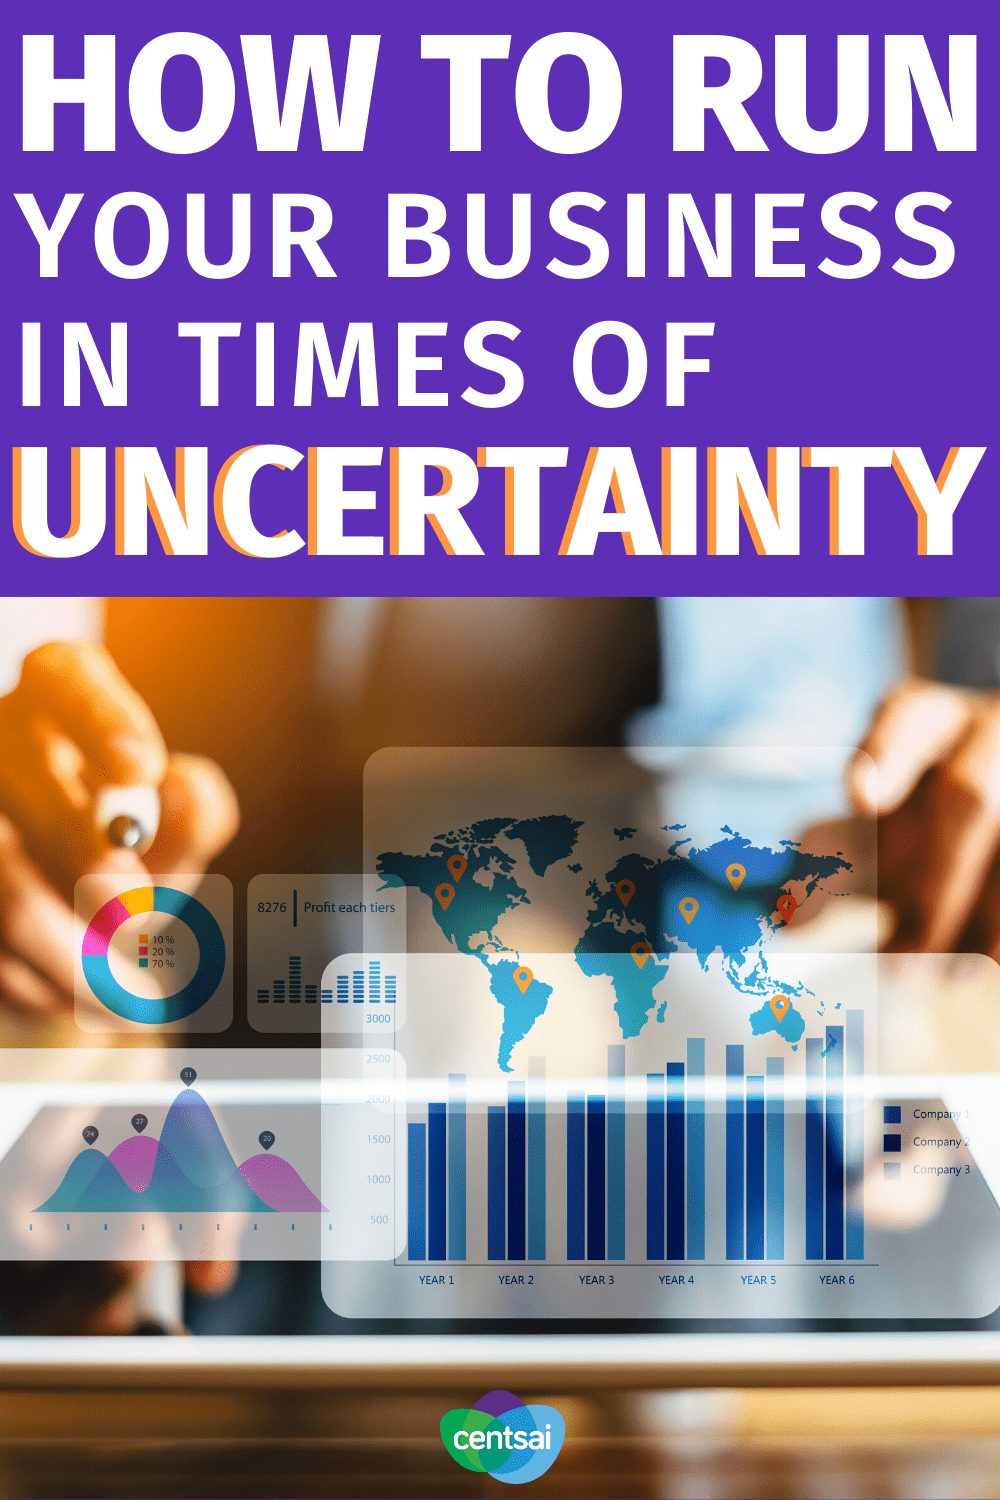 How to Run Your Business in Times of Uncertainty